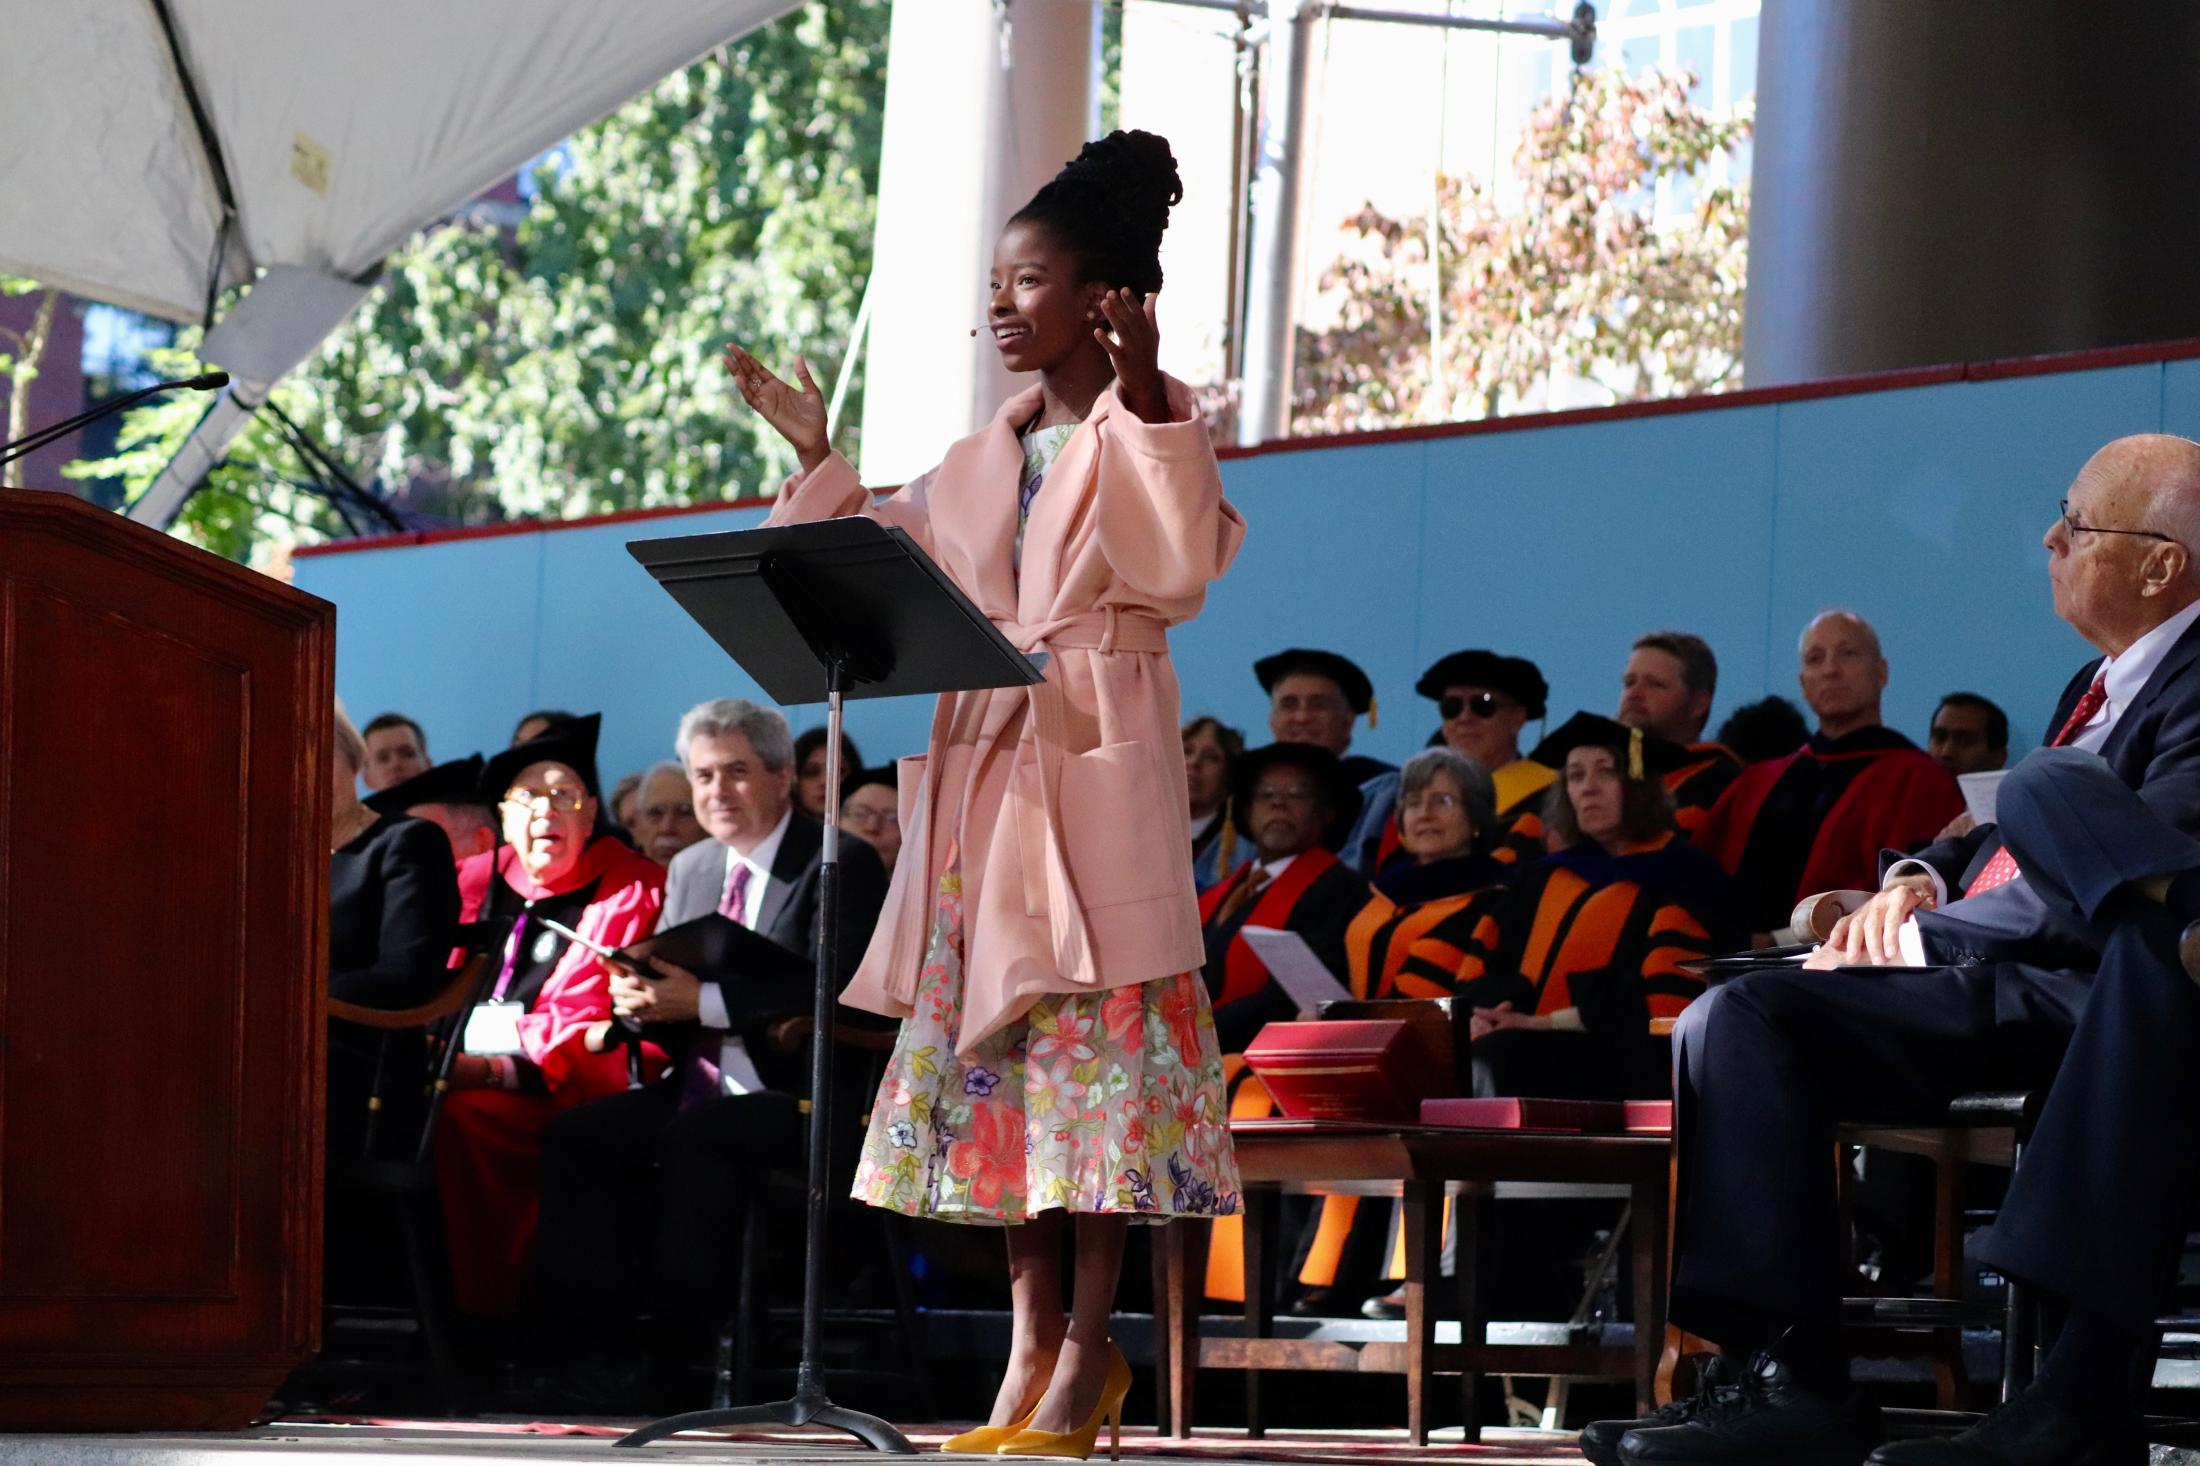 Amanda S.C. Gorman '20, the inaugural Youth Poet Laureate of the United States, raises her hands to the crowd while delivering an original poem that she wrote specifically for President Bacow's inauguration.